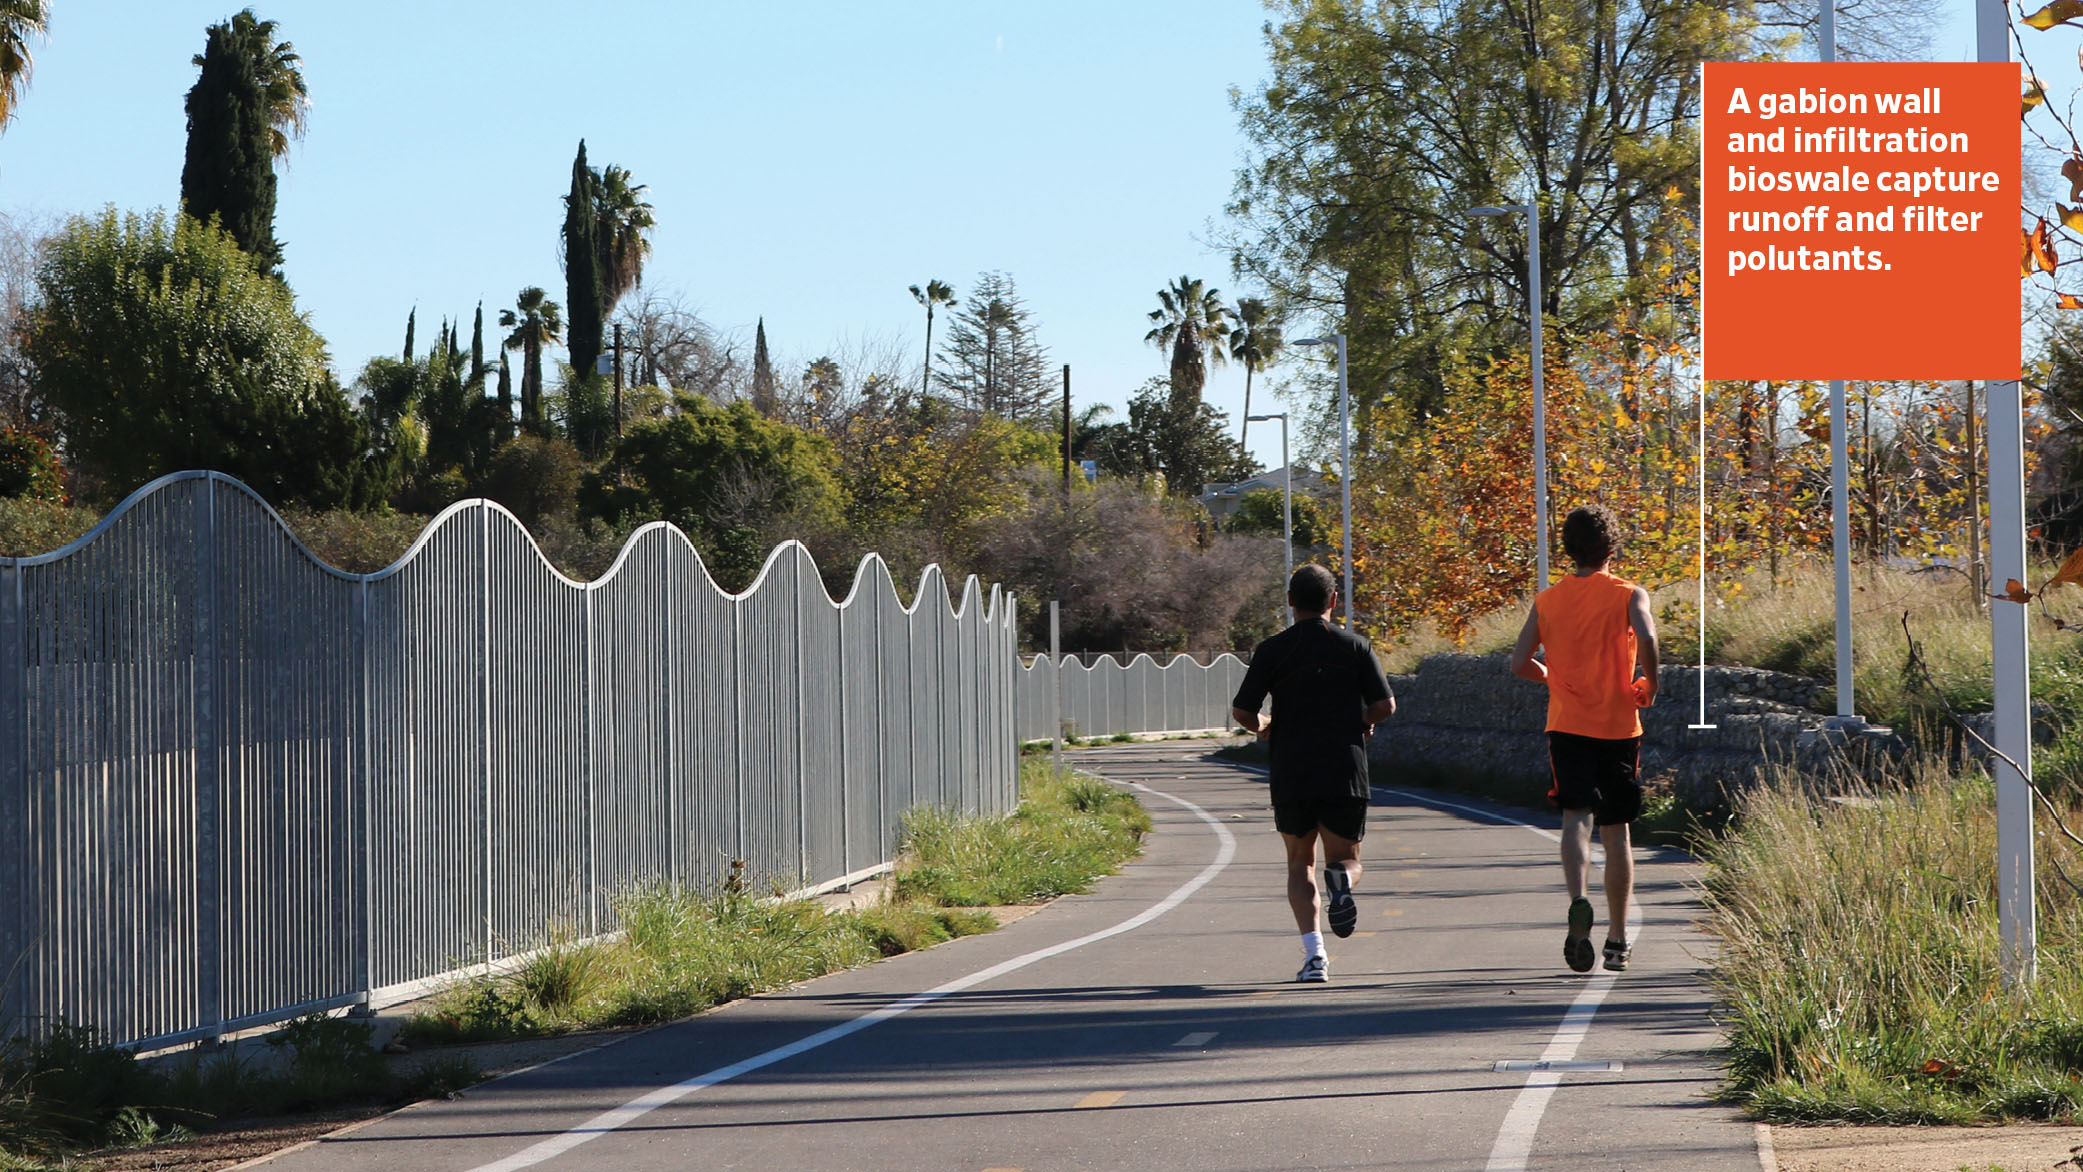 As runners jog by on the LA Riverfront Greenway, a gabion retaining wall and infiltration bioswale capture runoff and filter pollutants.